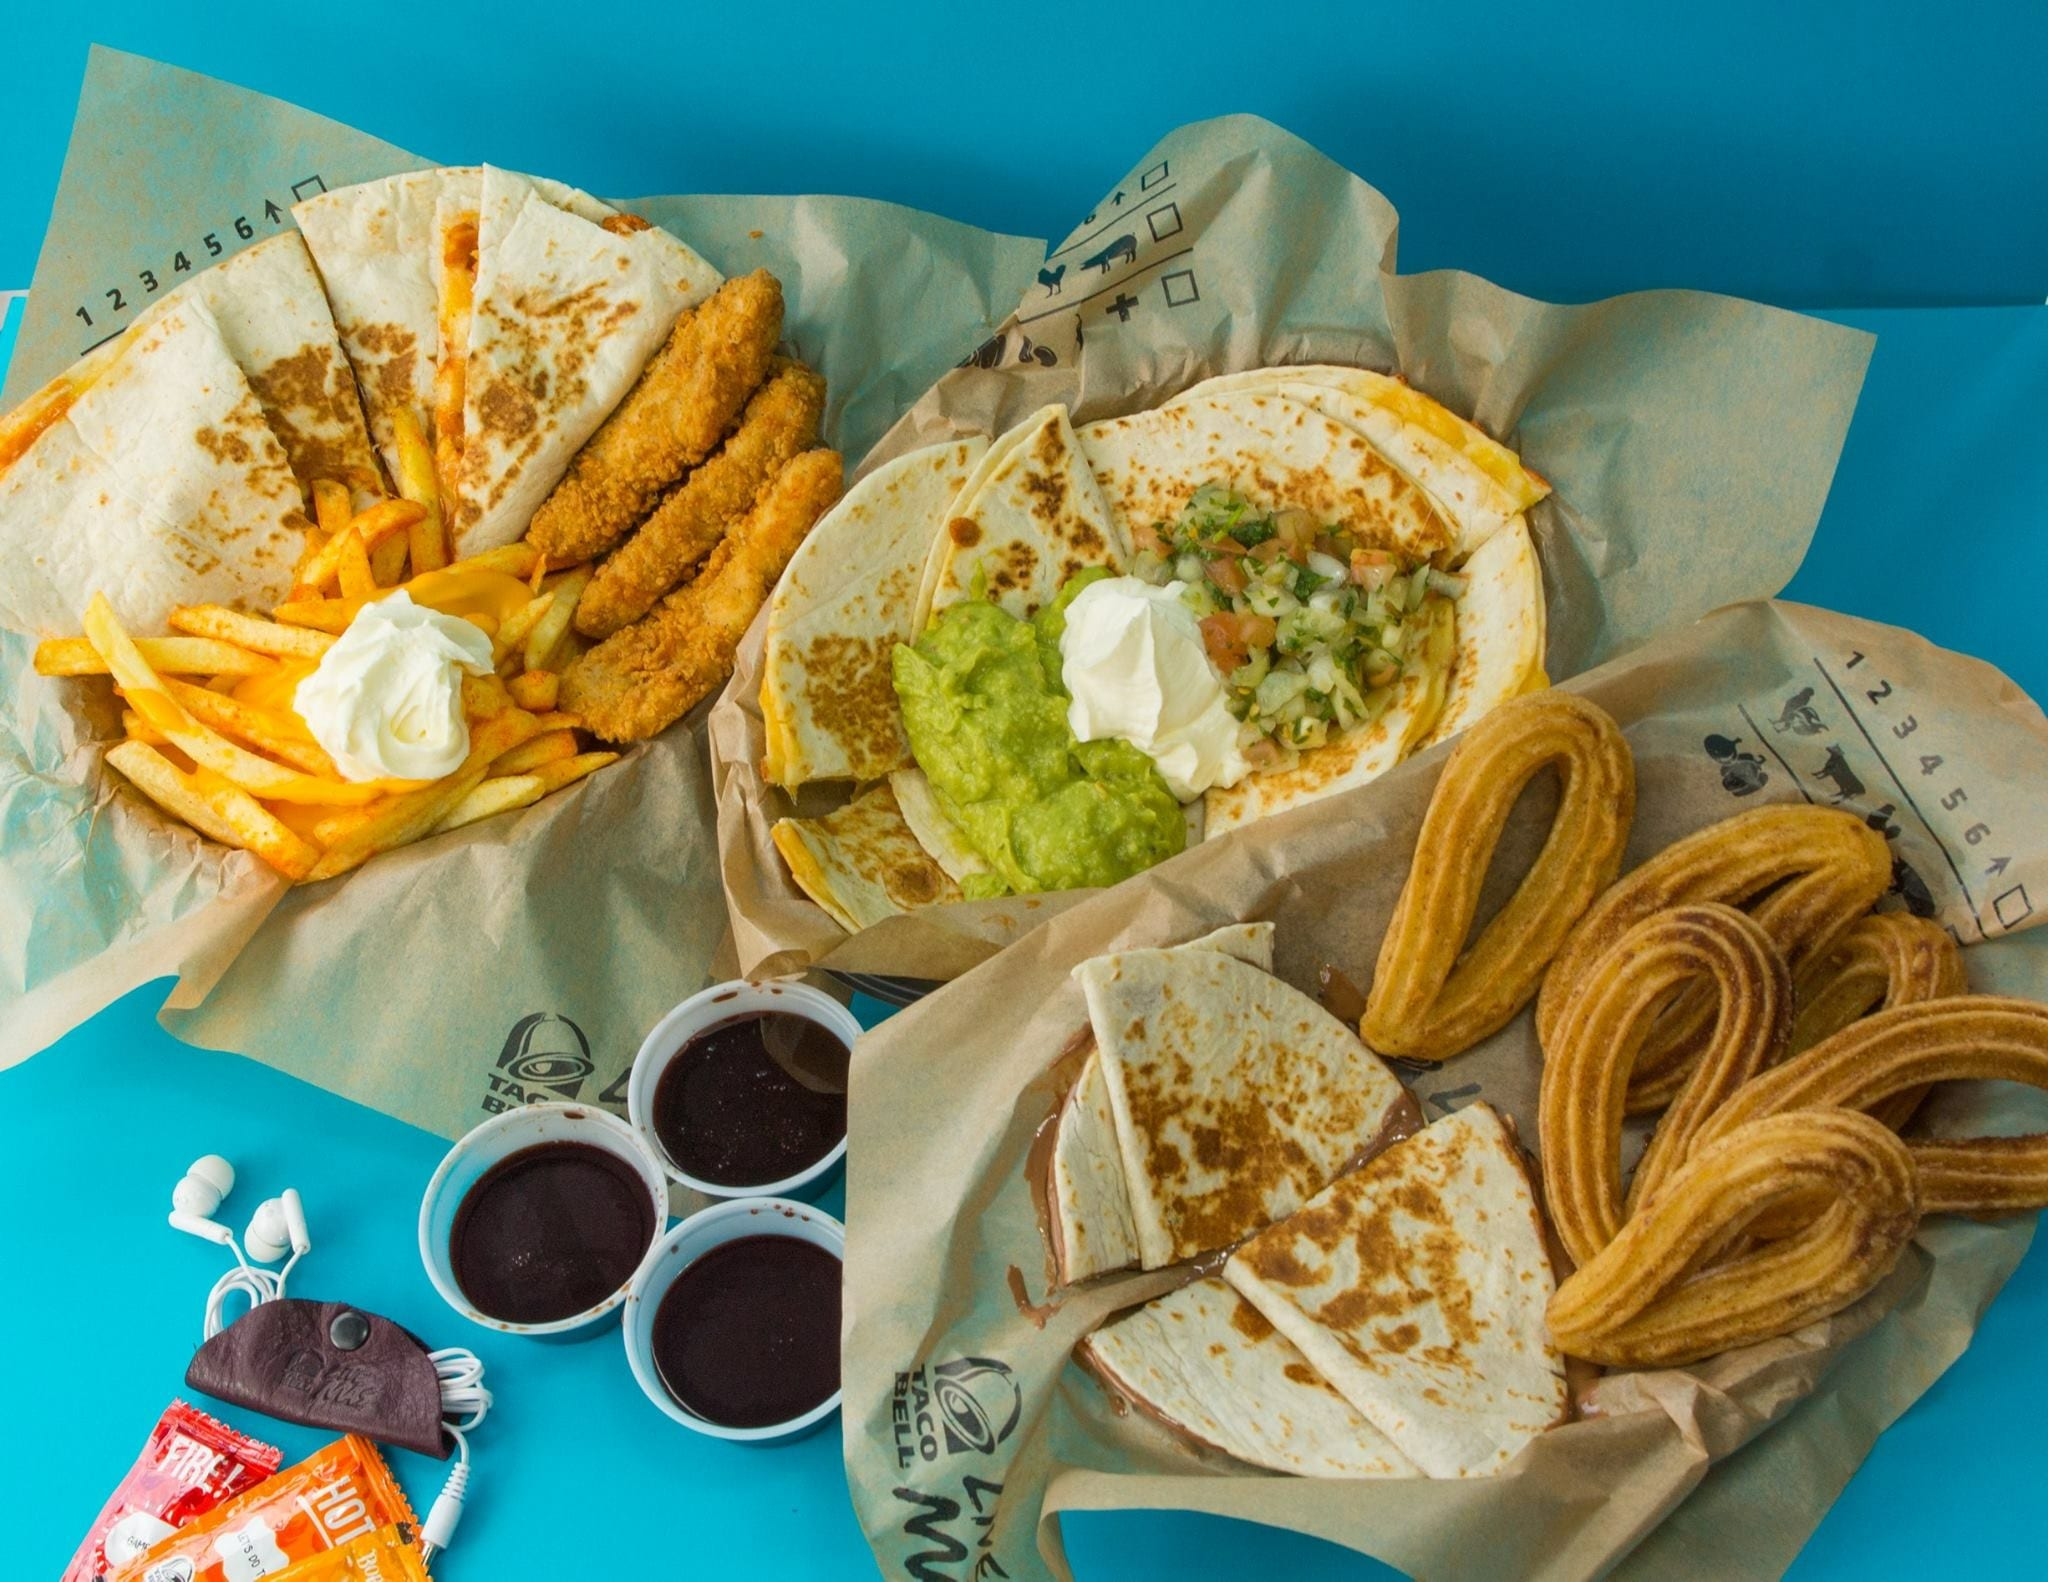 News: Another Taco Bell for Glasgow